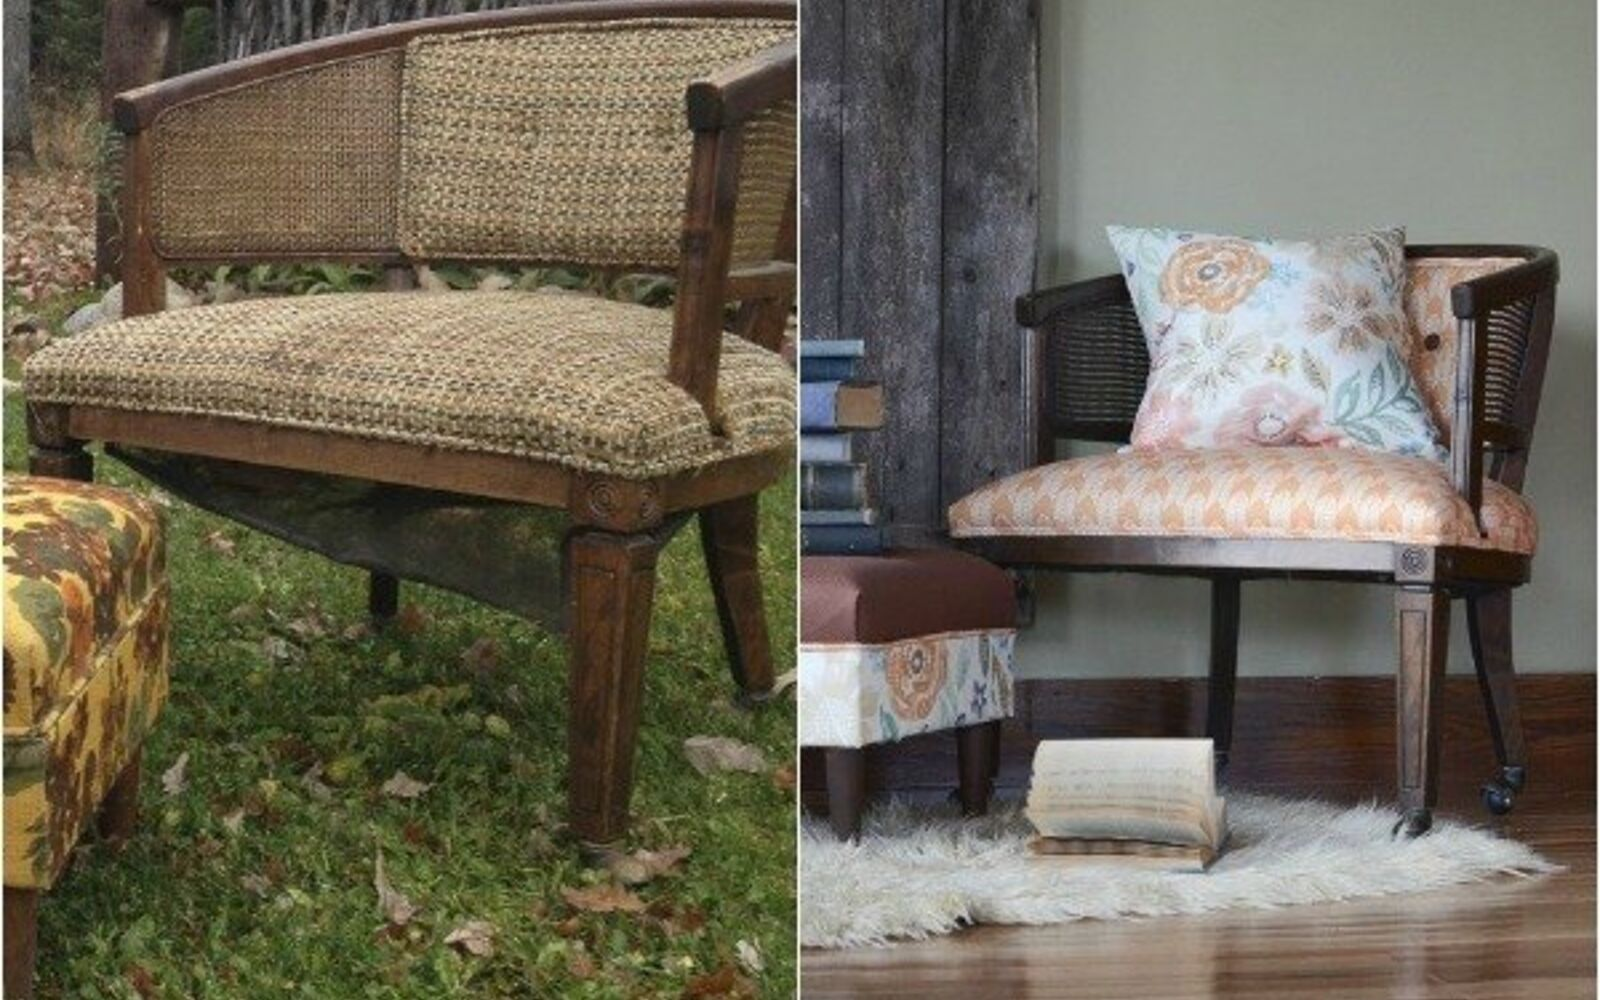 s 14 shocking furniture transformations using fabric, painted furniture, reupholster, From Dull Dreary to Bright Wonderful